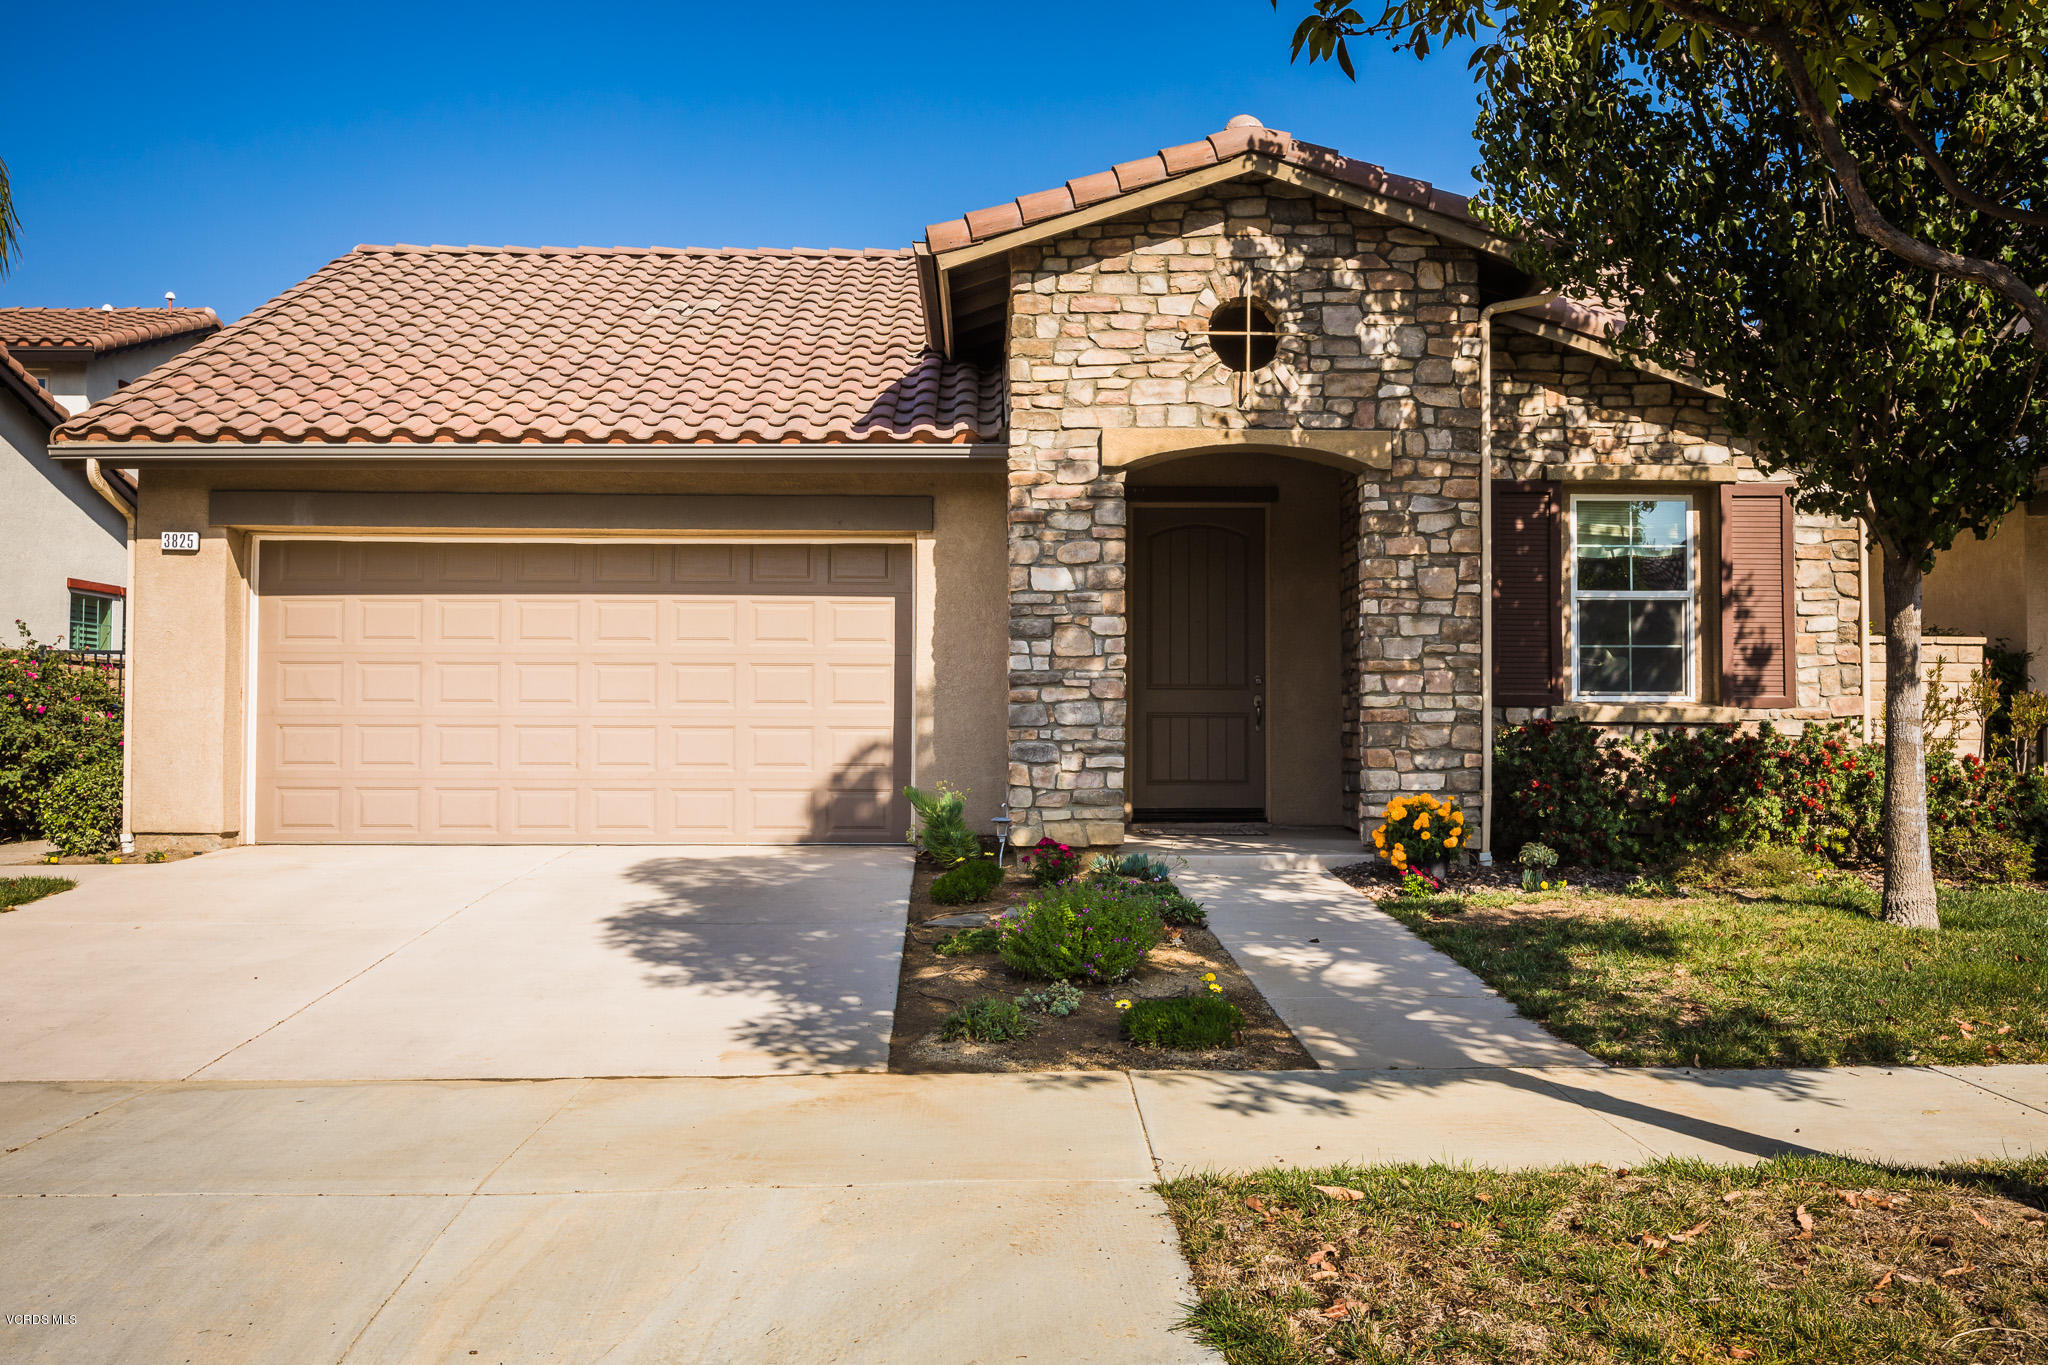 3825 Hedge Lane, Camarillo, CA 93012